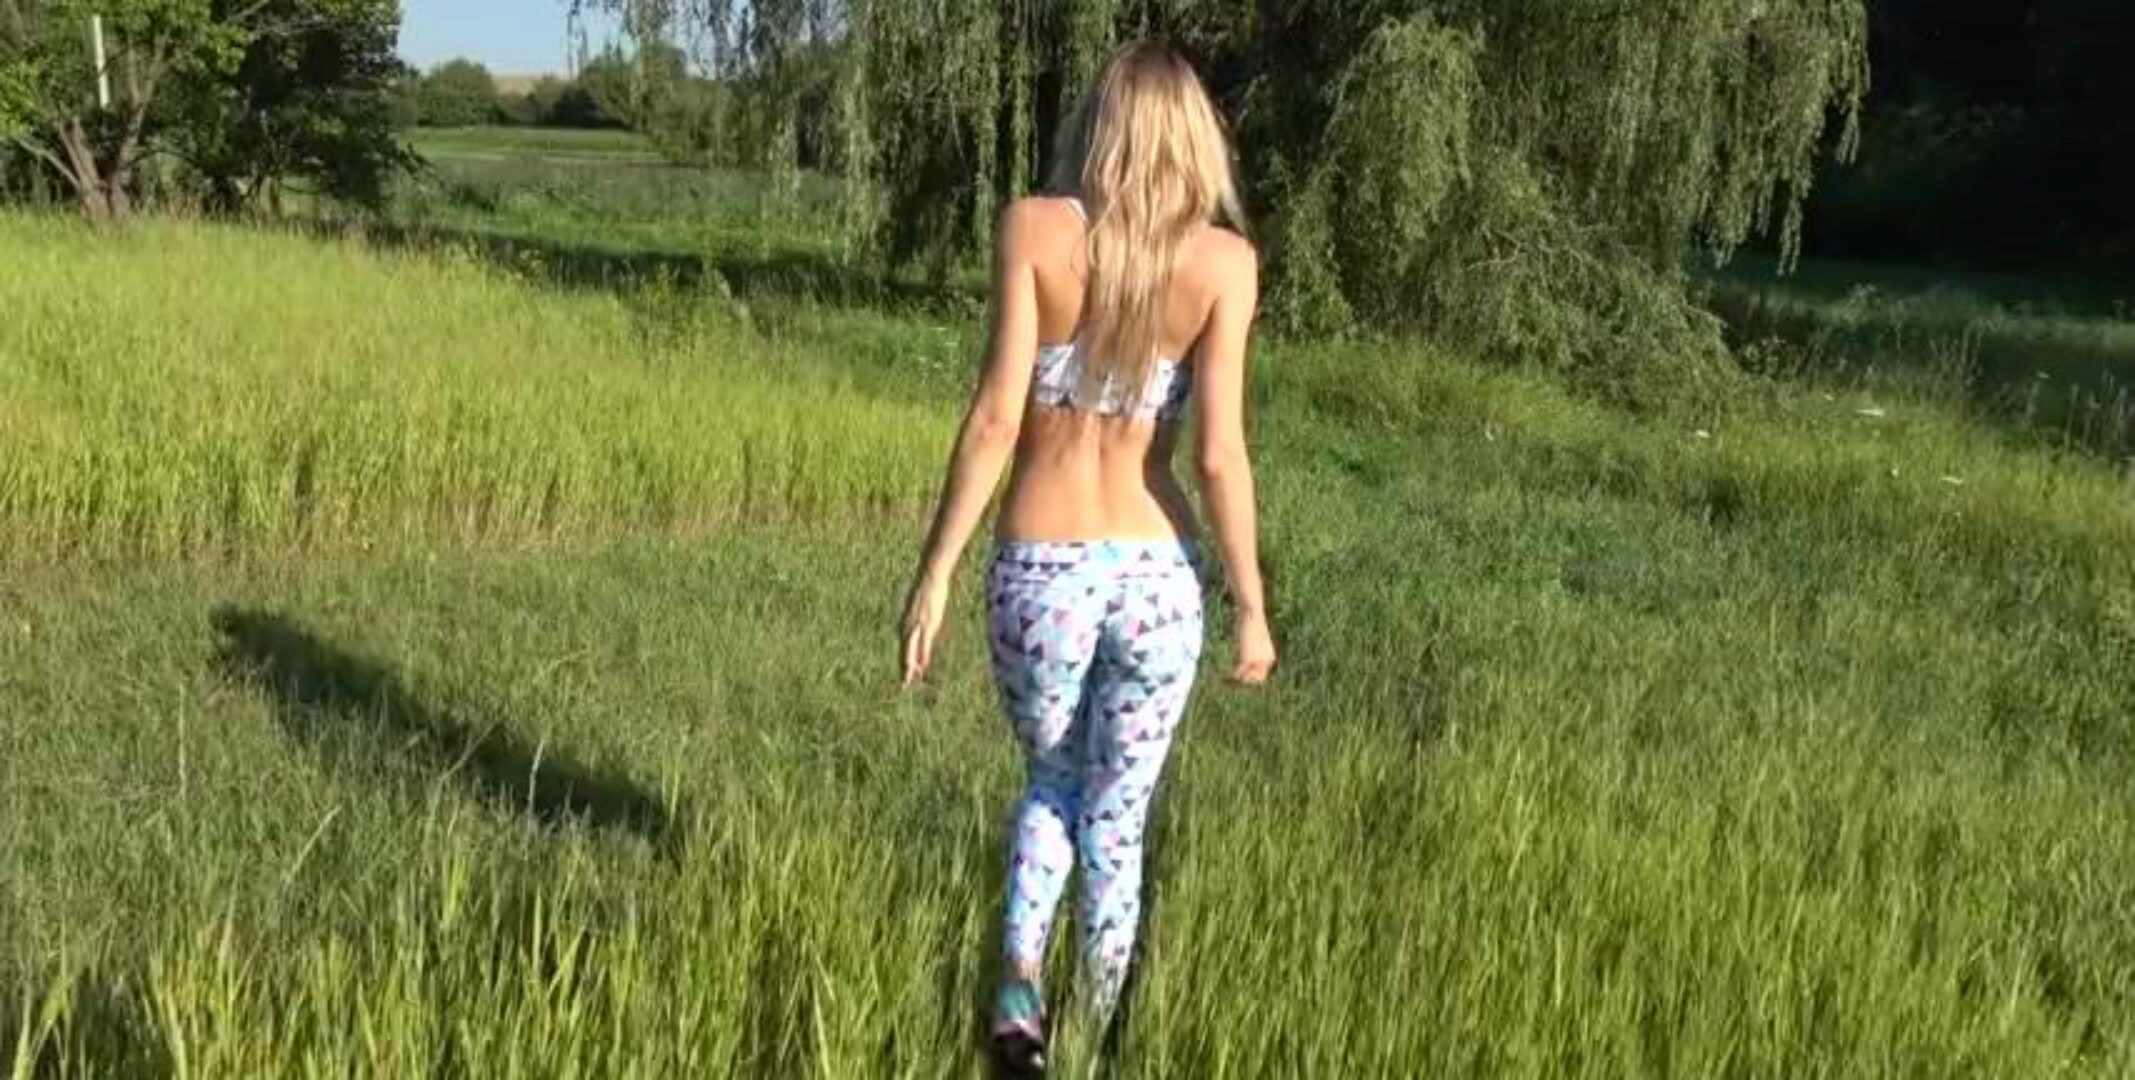 Step Sister Seduced Step Brother With Yoga Pants Outdoor - Free Porn Videos - YouPorn Watch step sista seduced step stepbro with yoga panties outdoor online on YouPorn.com. YouPorn is the thickest Big Dick porn video web site with the best selection of free-for-all high quality legings clips Enjoy our HD pornography episodes on any contraption of your choosing!